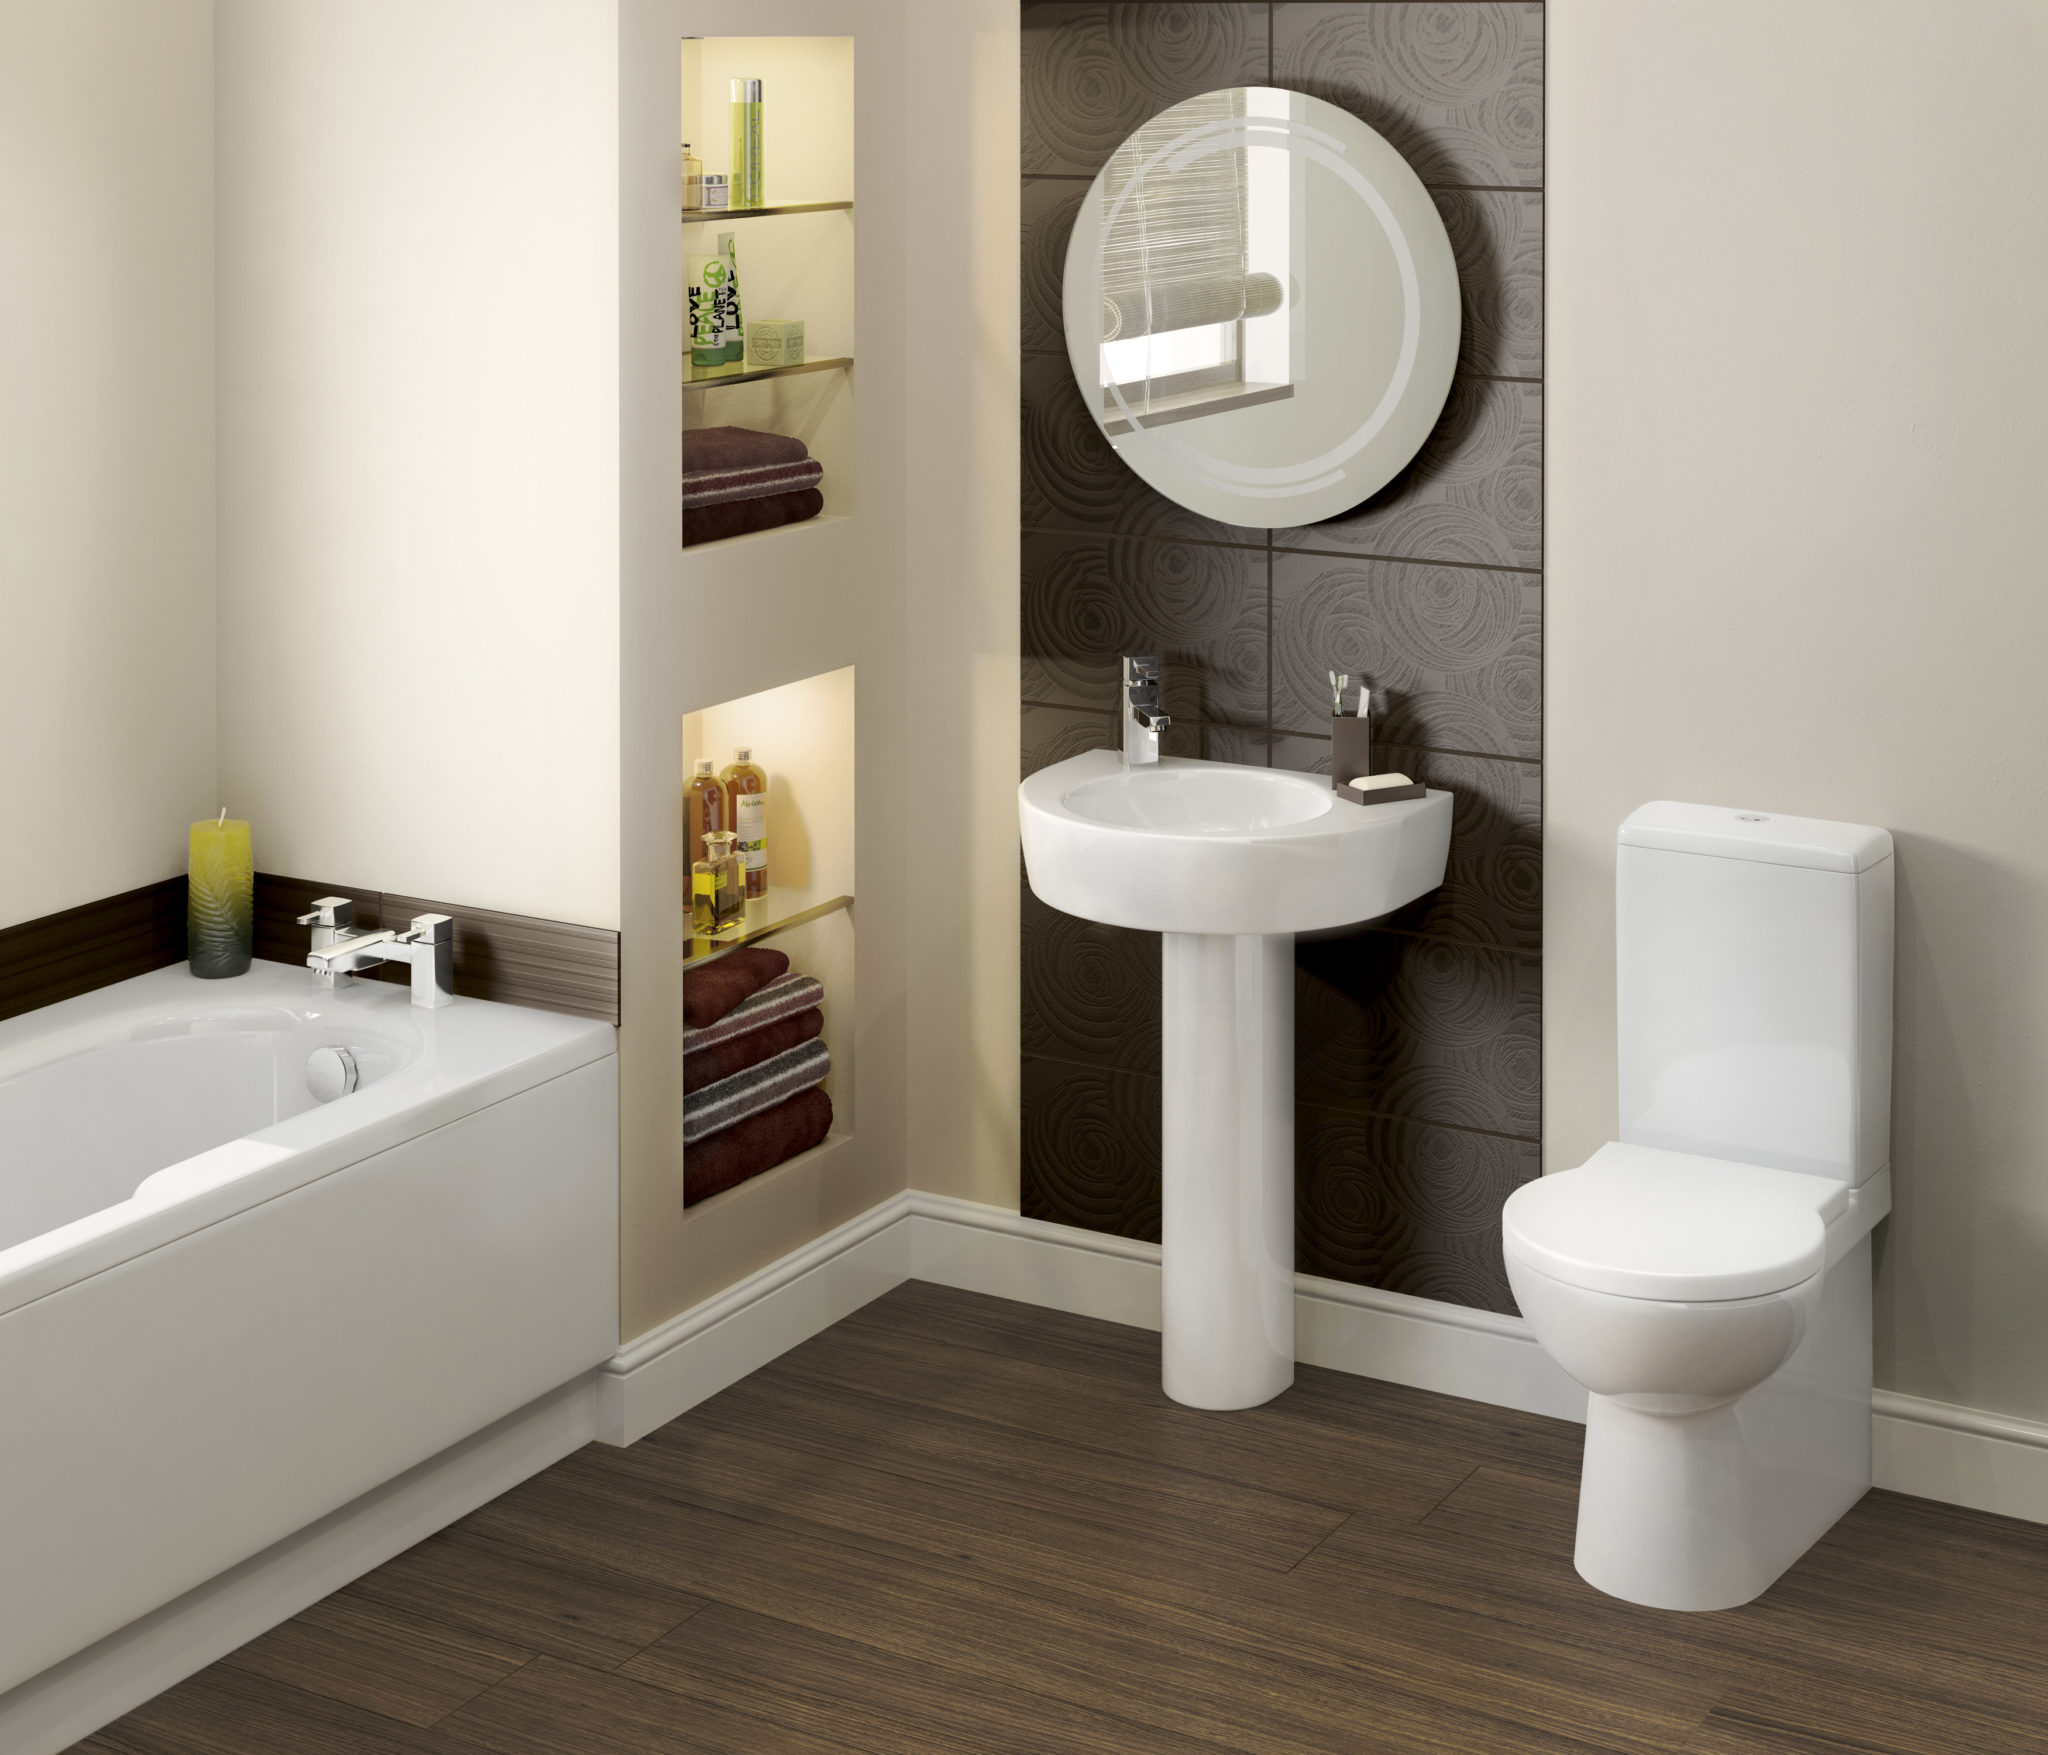 Choosing a plumbing contractor for your bathroom remodel How to remodel a bathroom